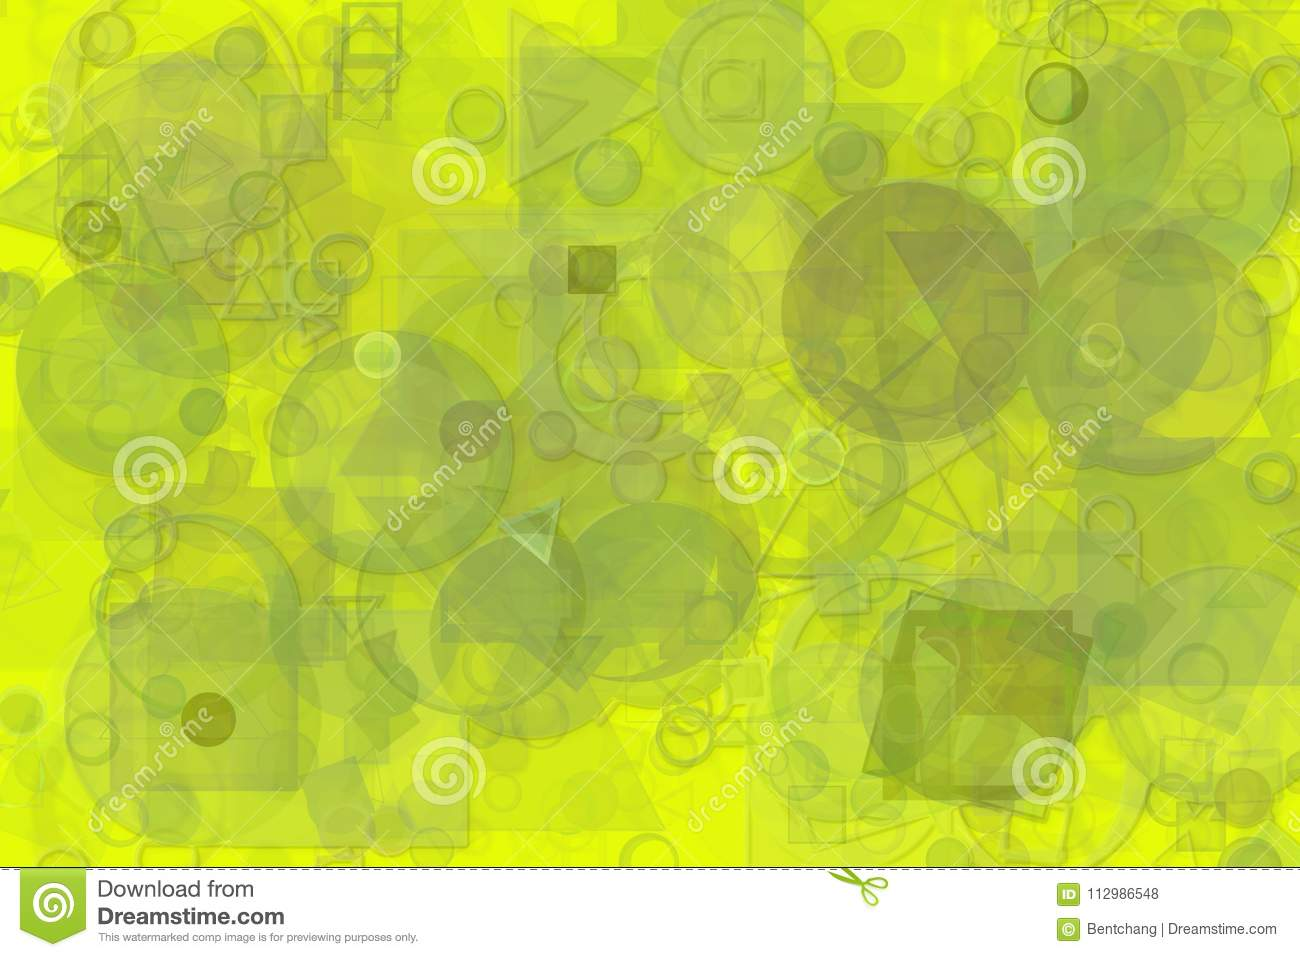 Shape pattern artistic abstract background. Bubble, square, artwork & stroke.